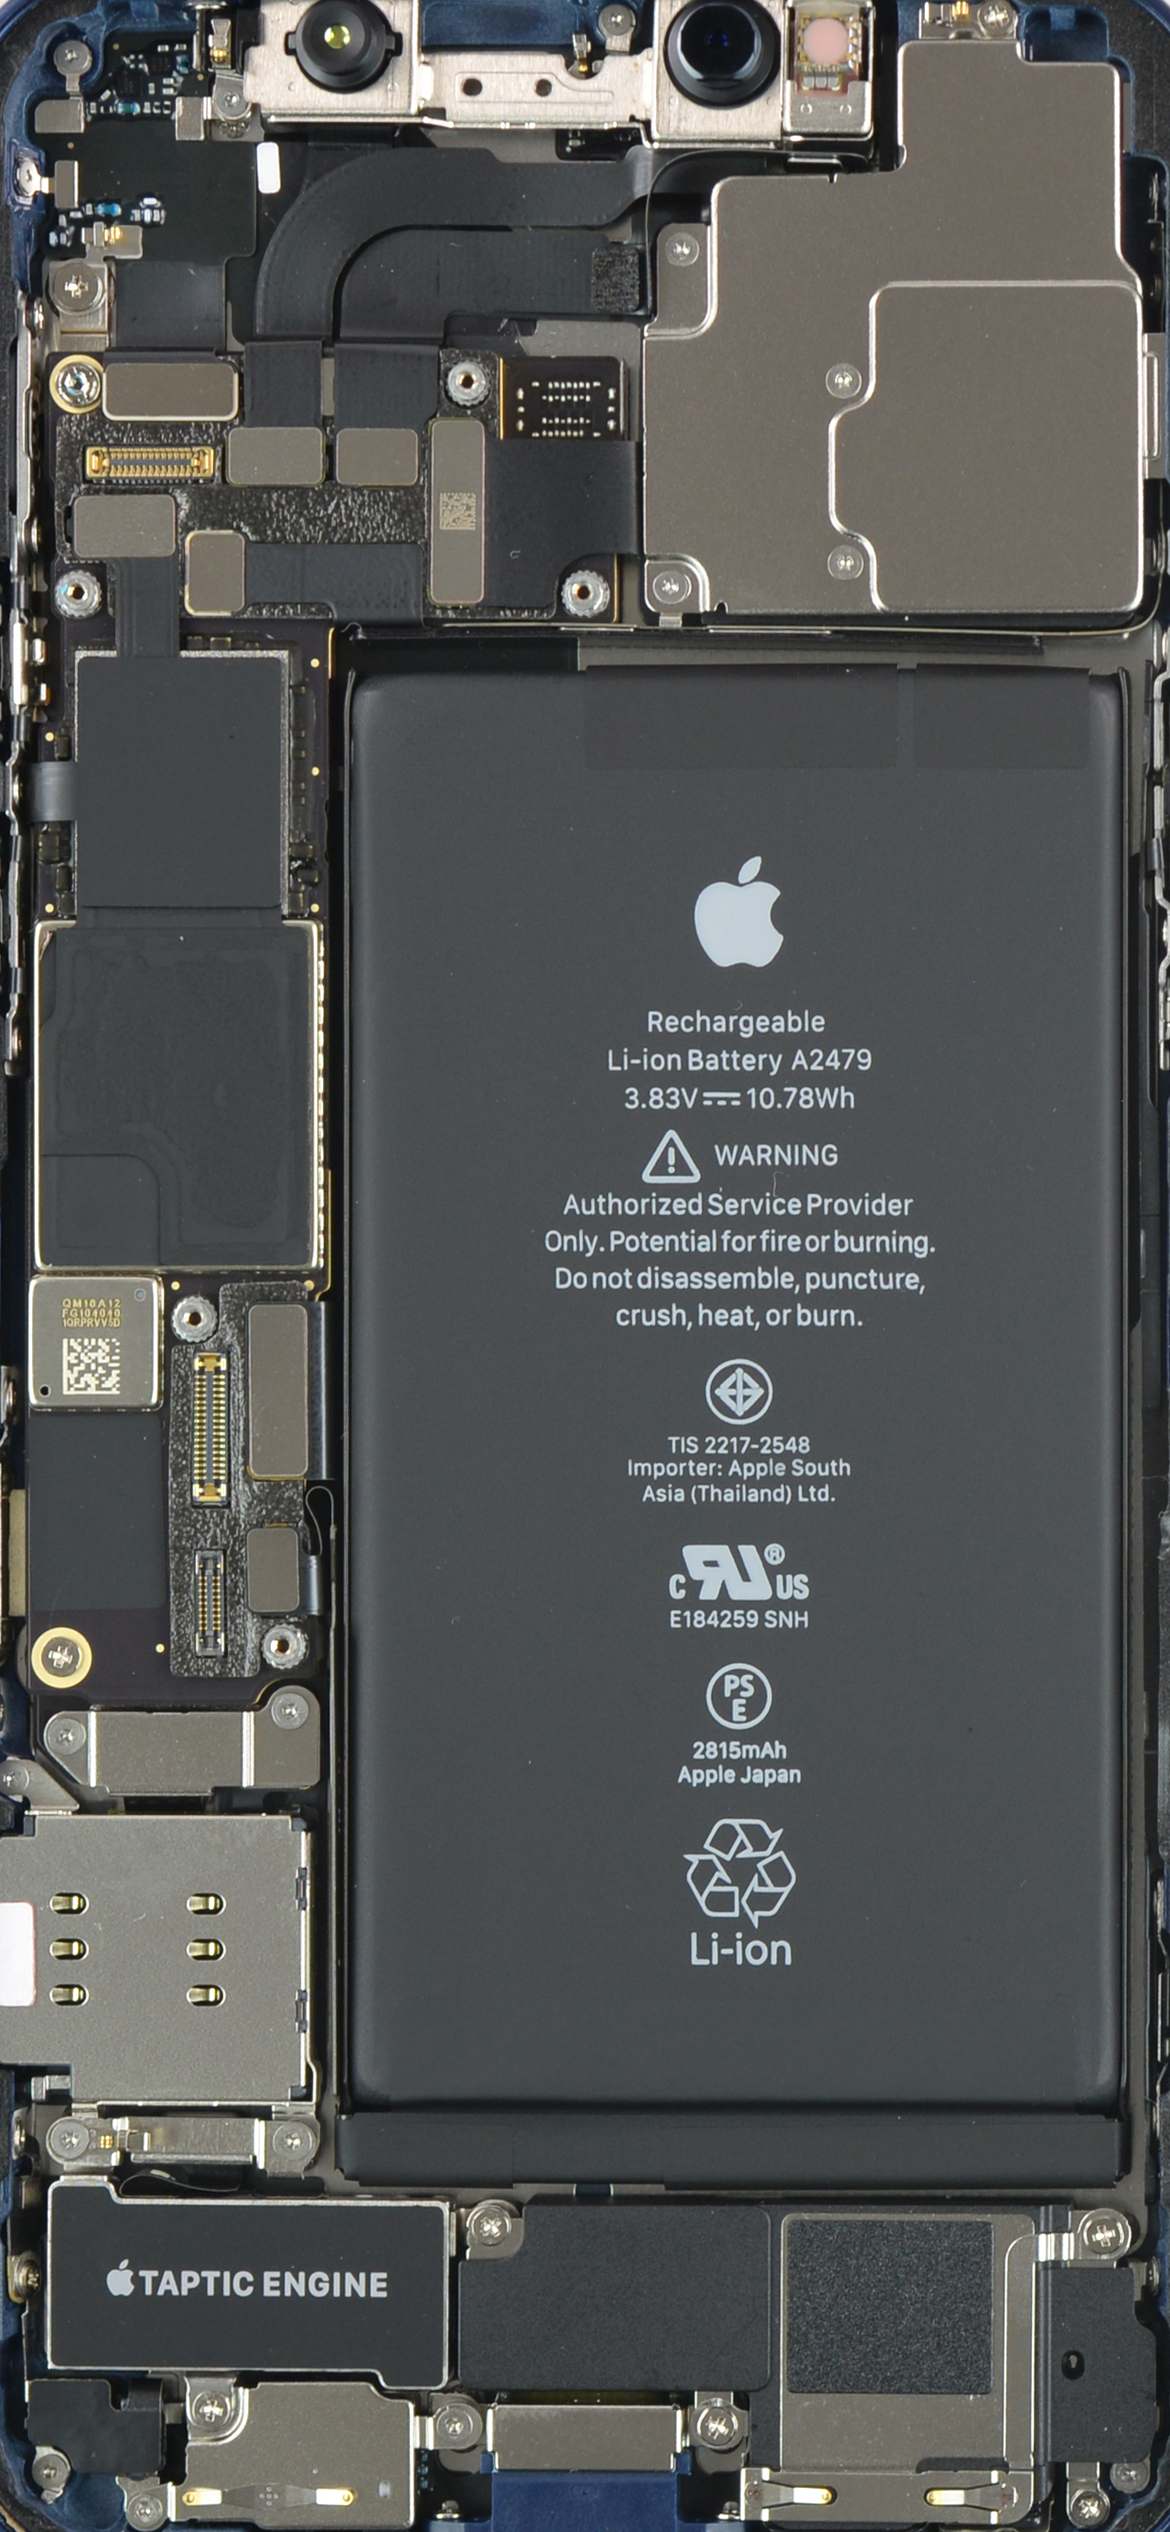 iPhone 12 internals wallpaper